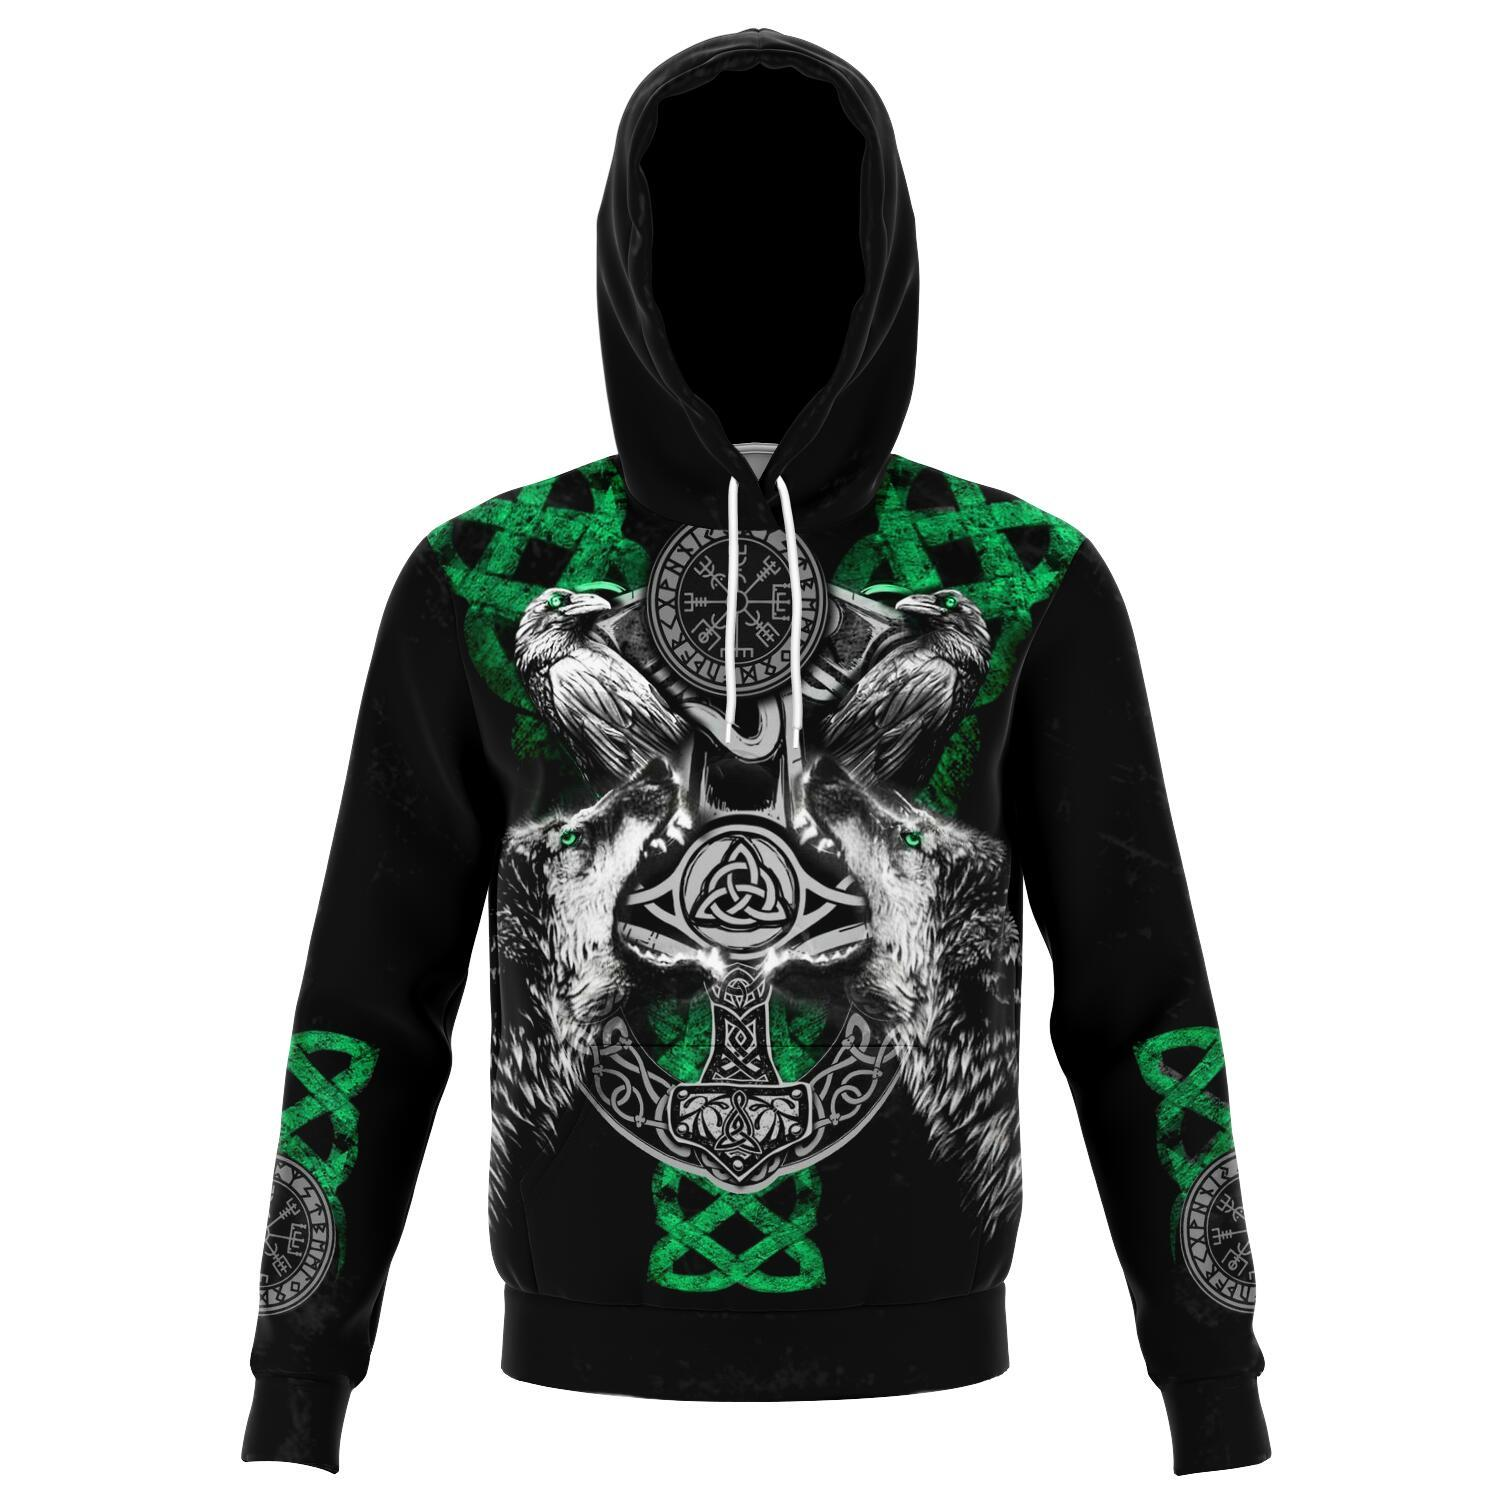 Viking Hoodie with Wolves and Ravens - Green